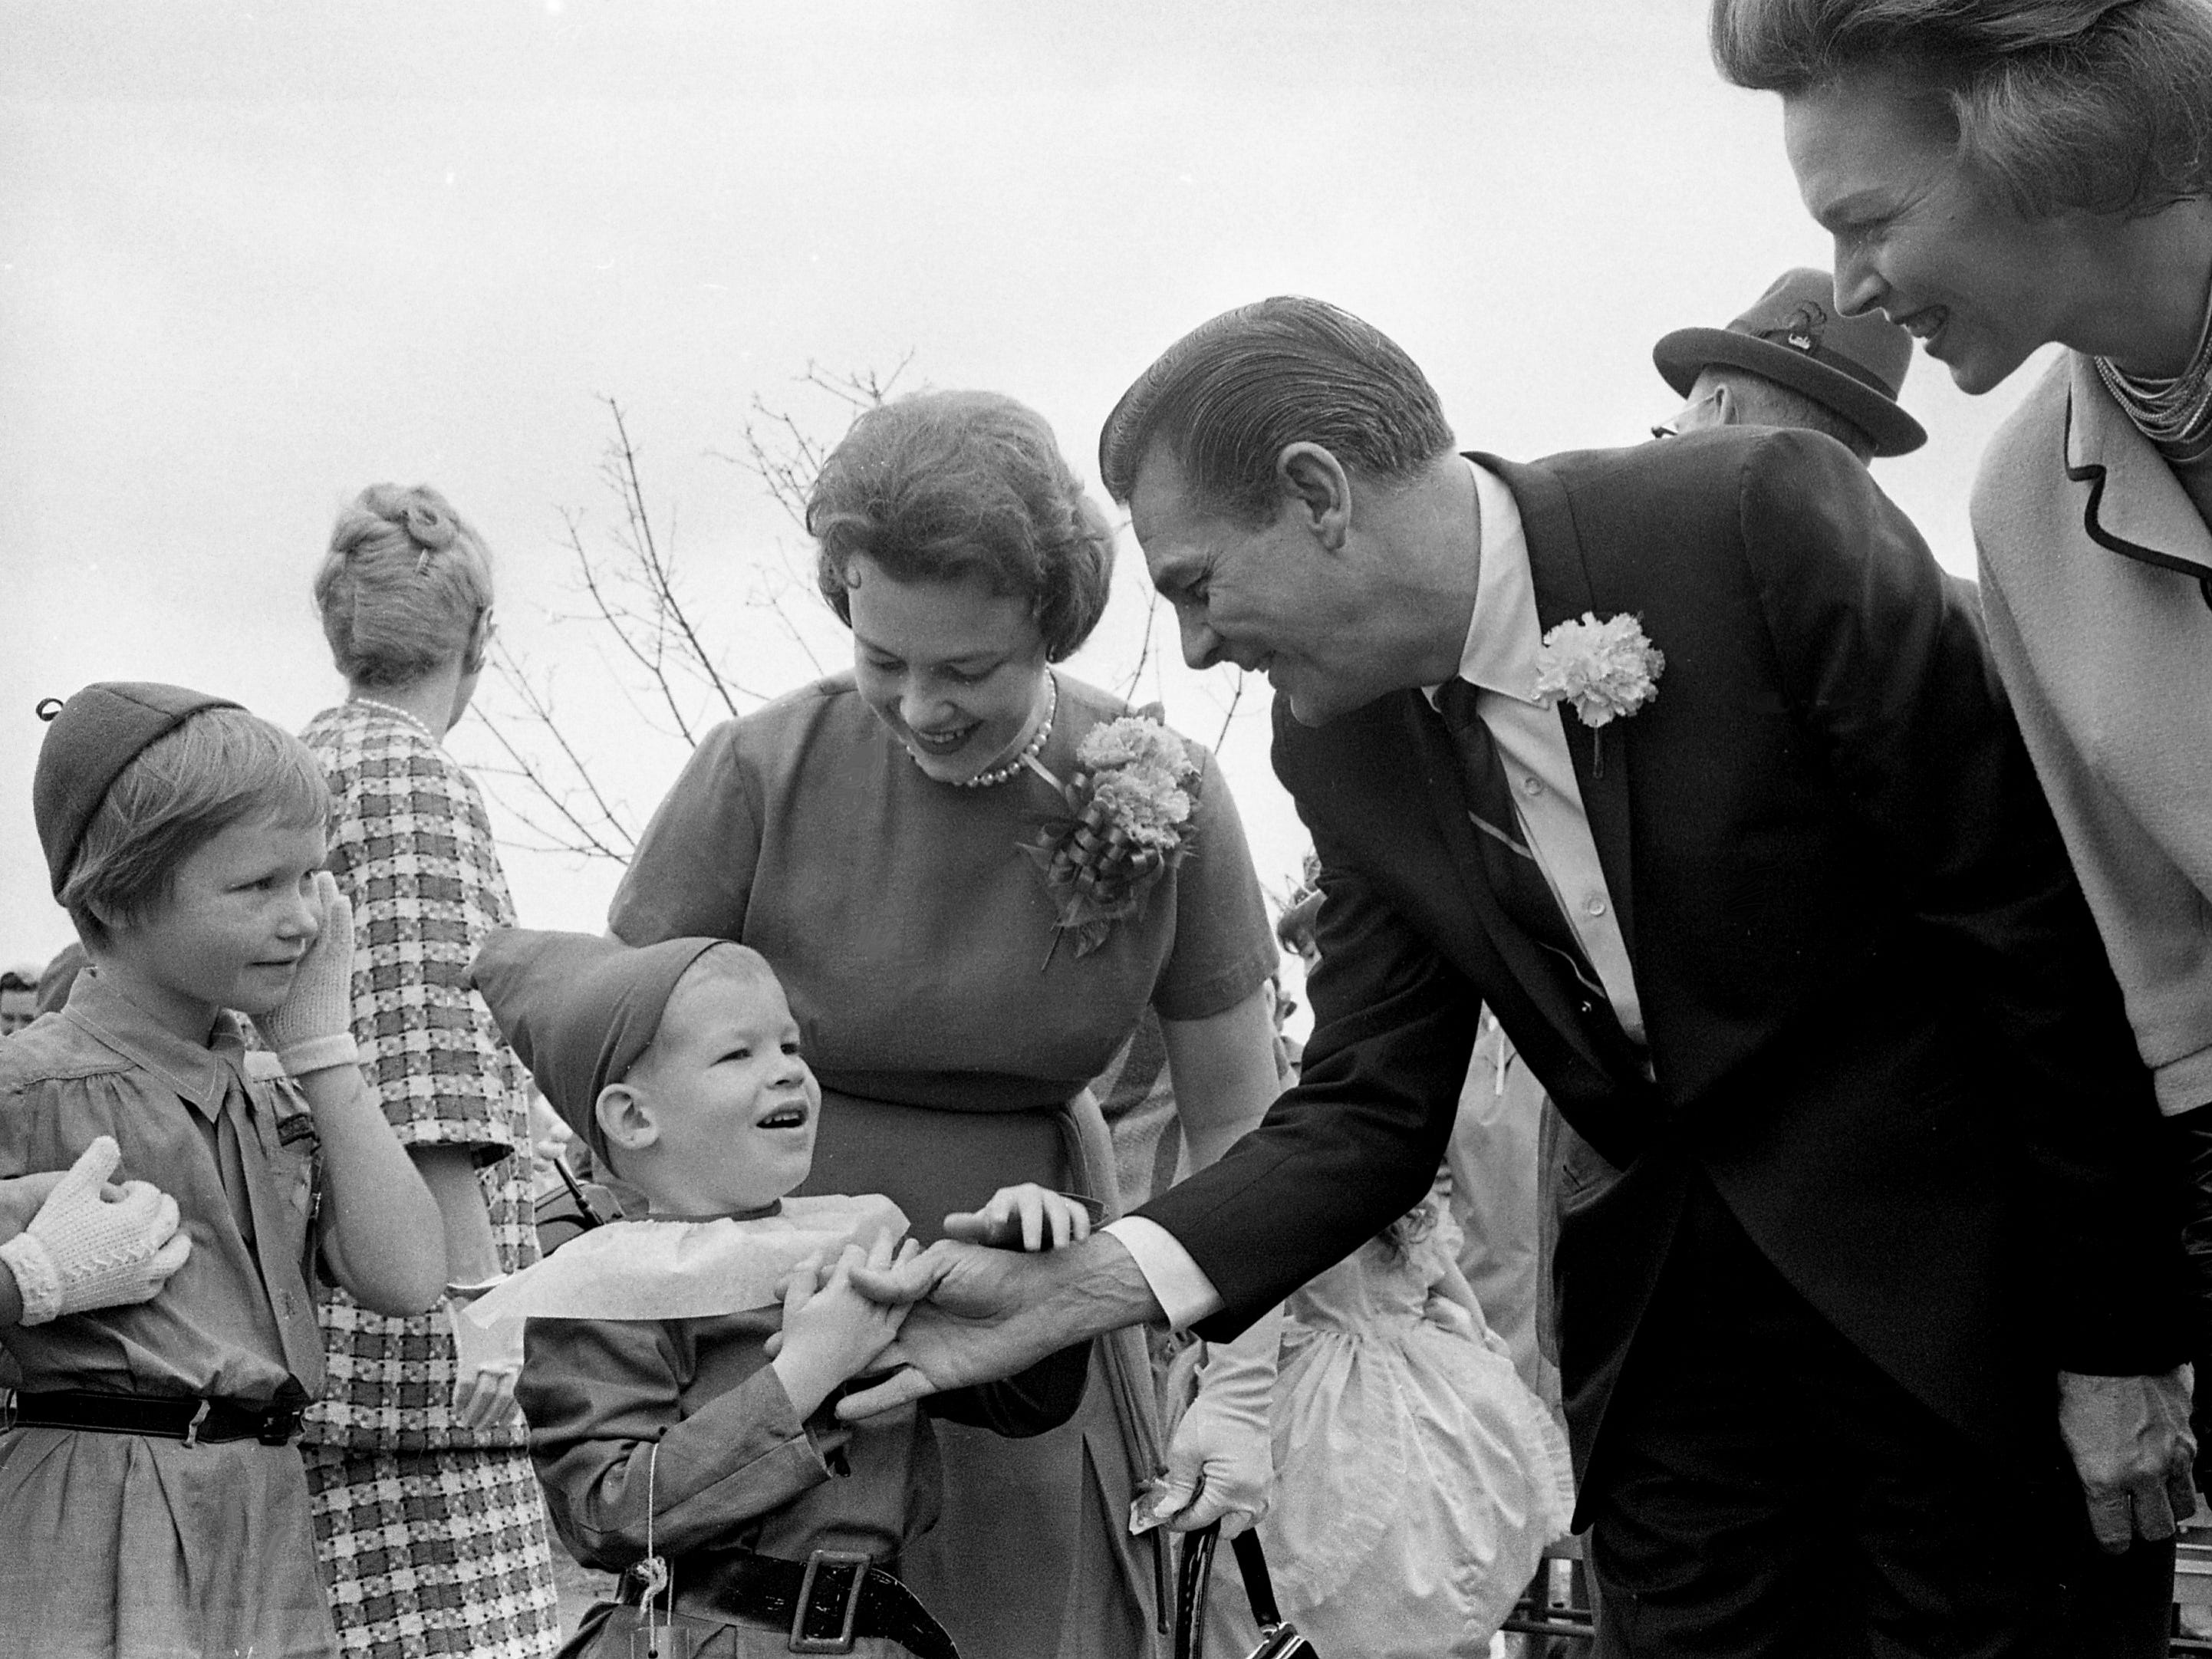 Congressman Ross Bass, center, and wife Avanell, right, share a moment with a young leprechaun after the parade of the second annual Wearing of the Green celebration in Erin, Tenn. March 14, 1964.